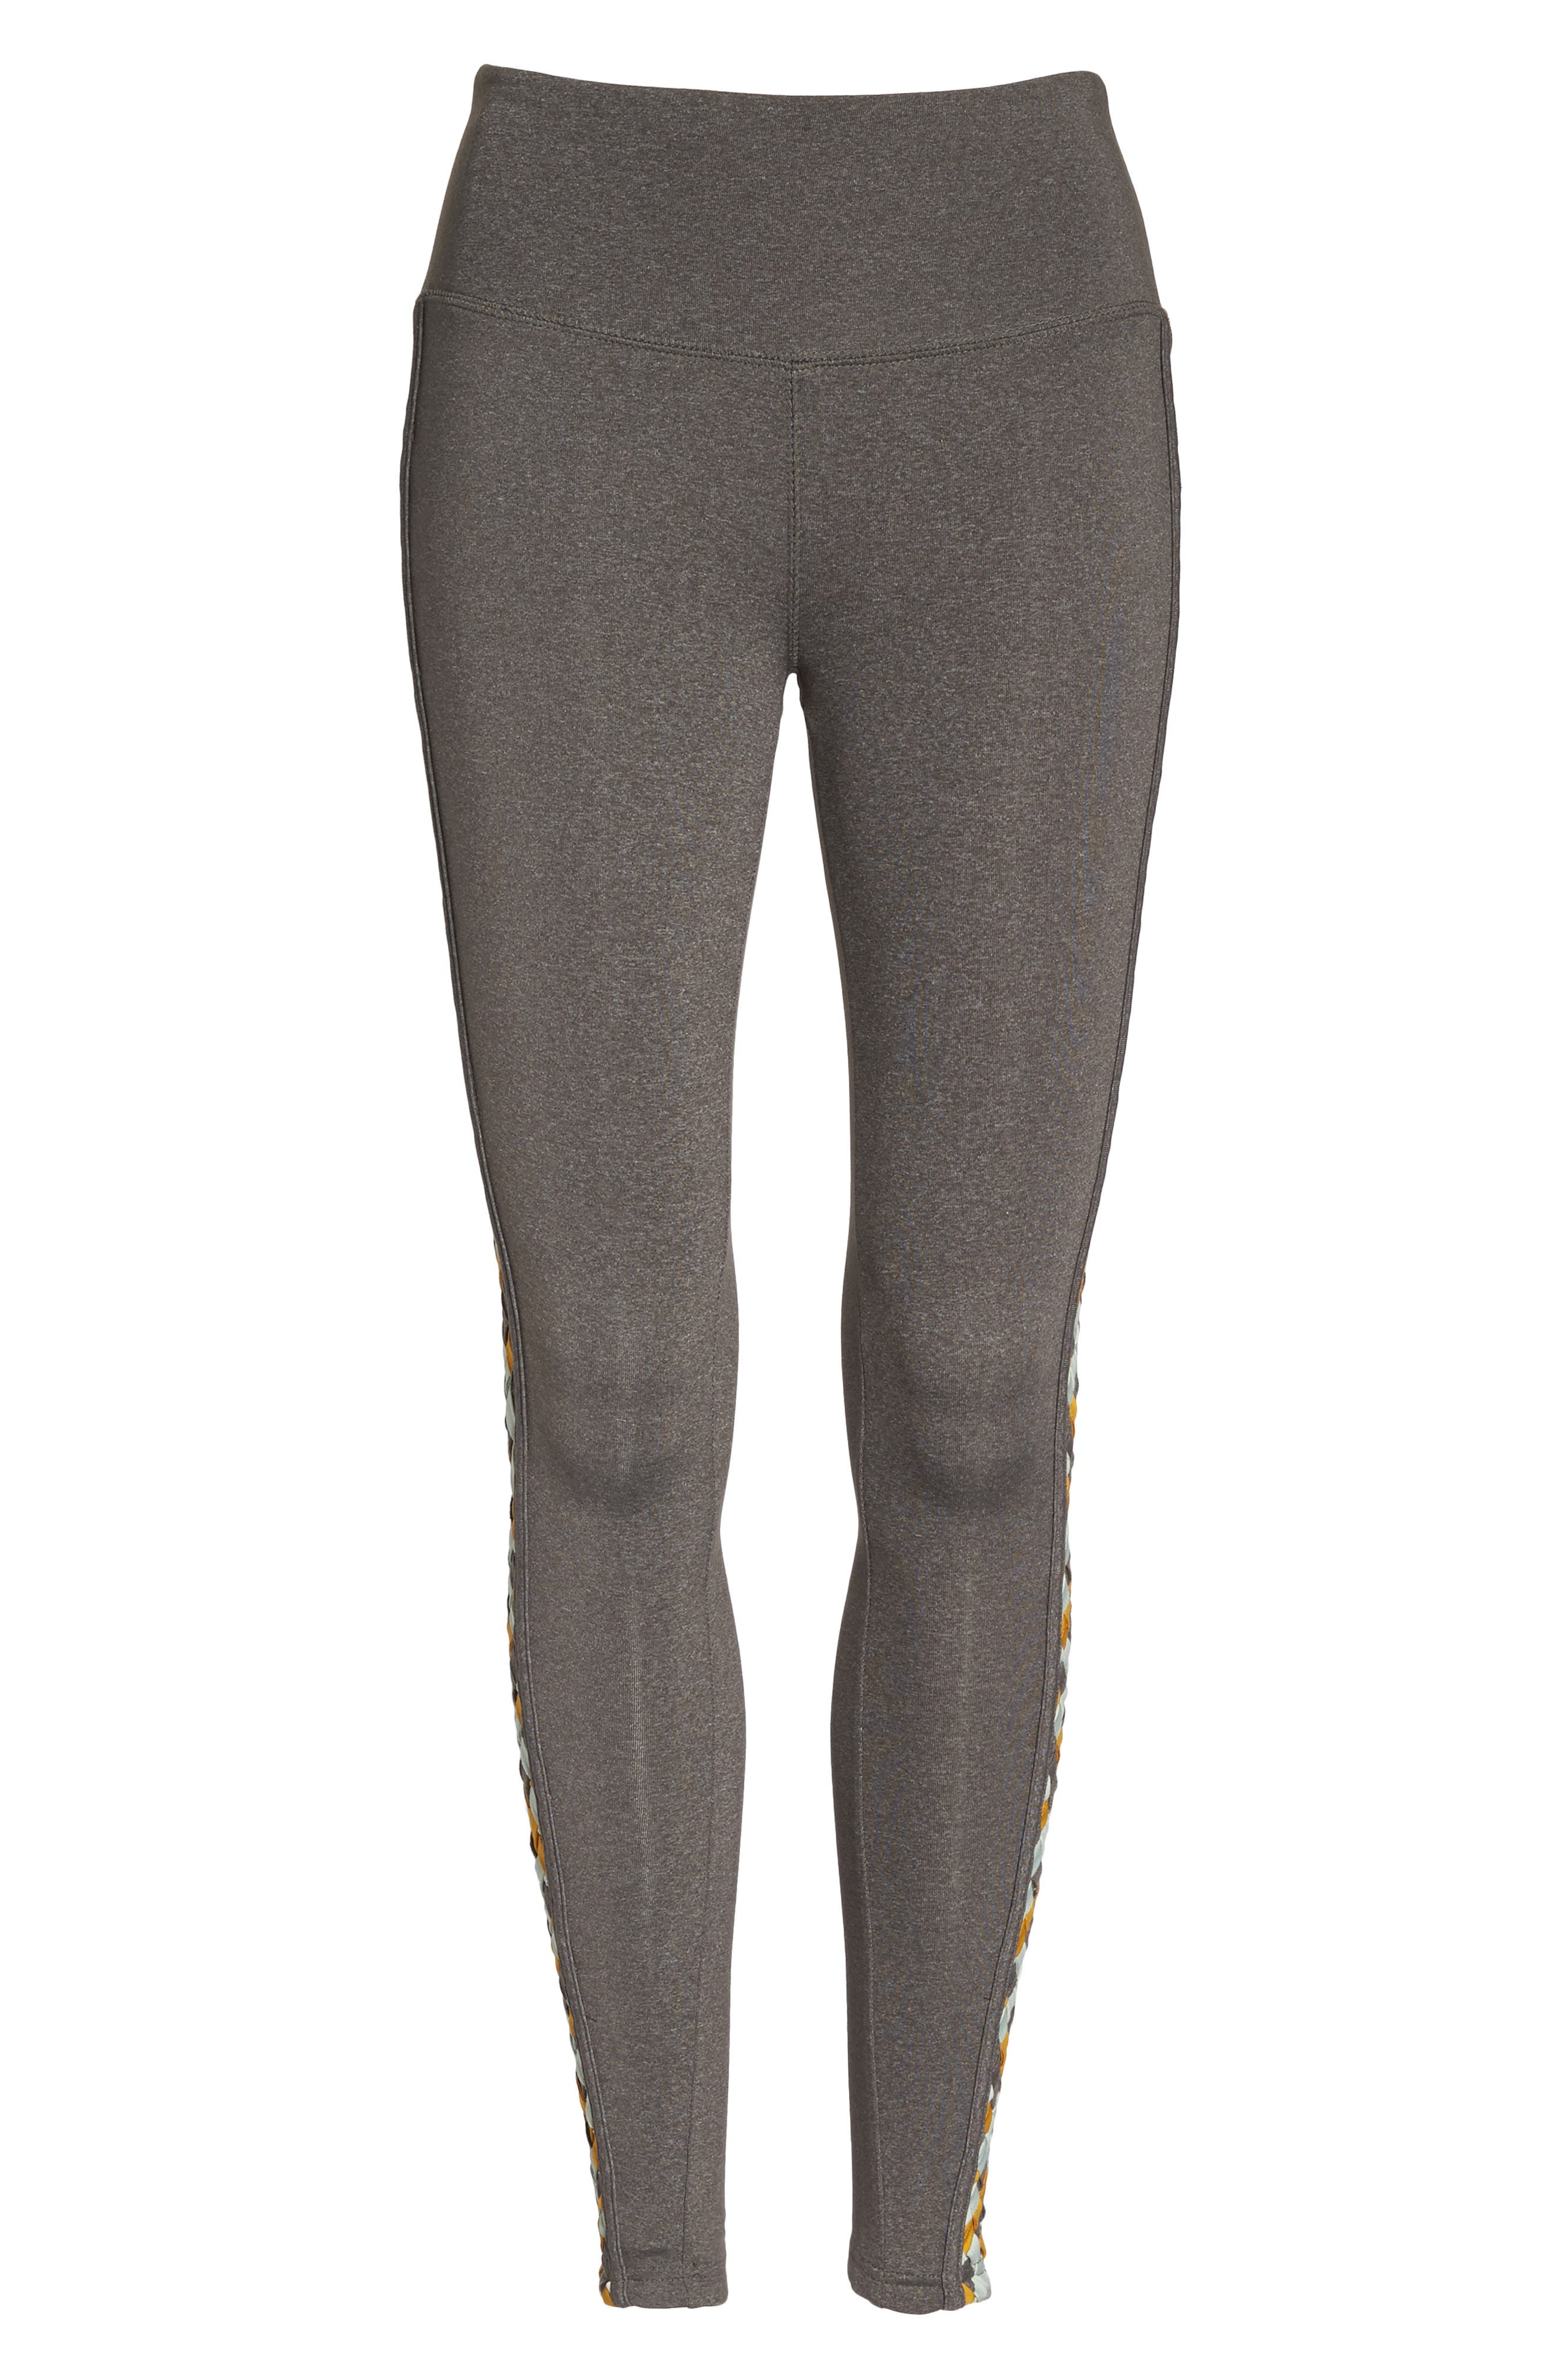 Free People Vision Leggings,                             Alternate thumbnail 7, color,                             058